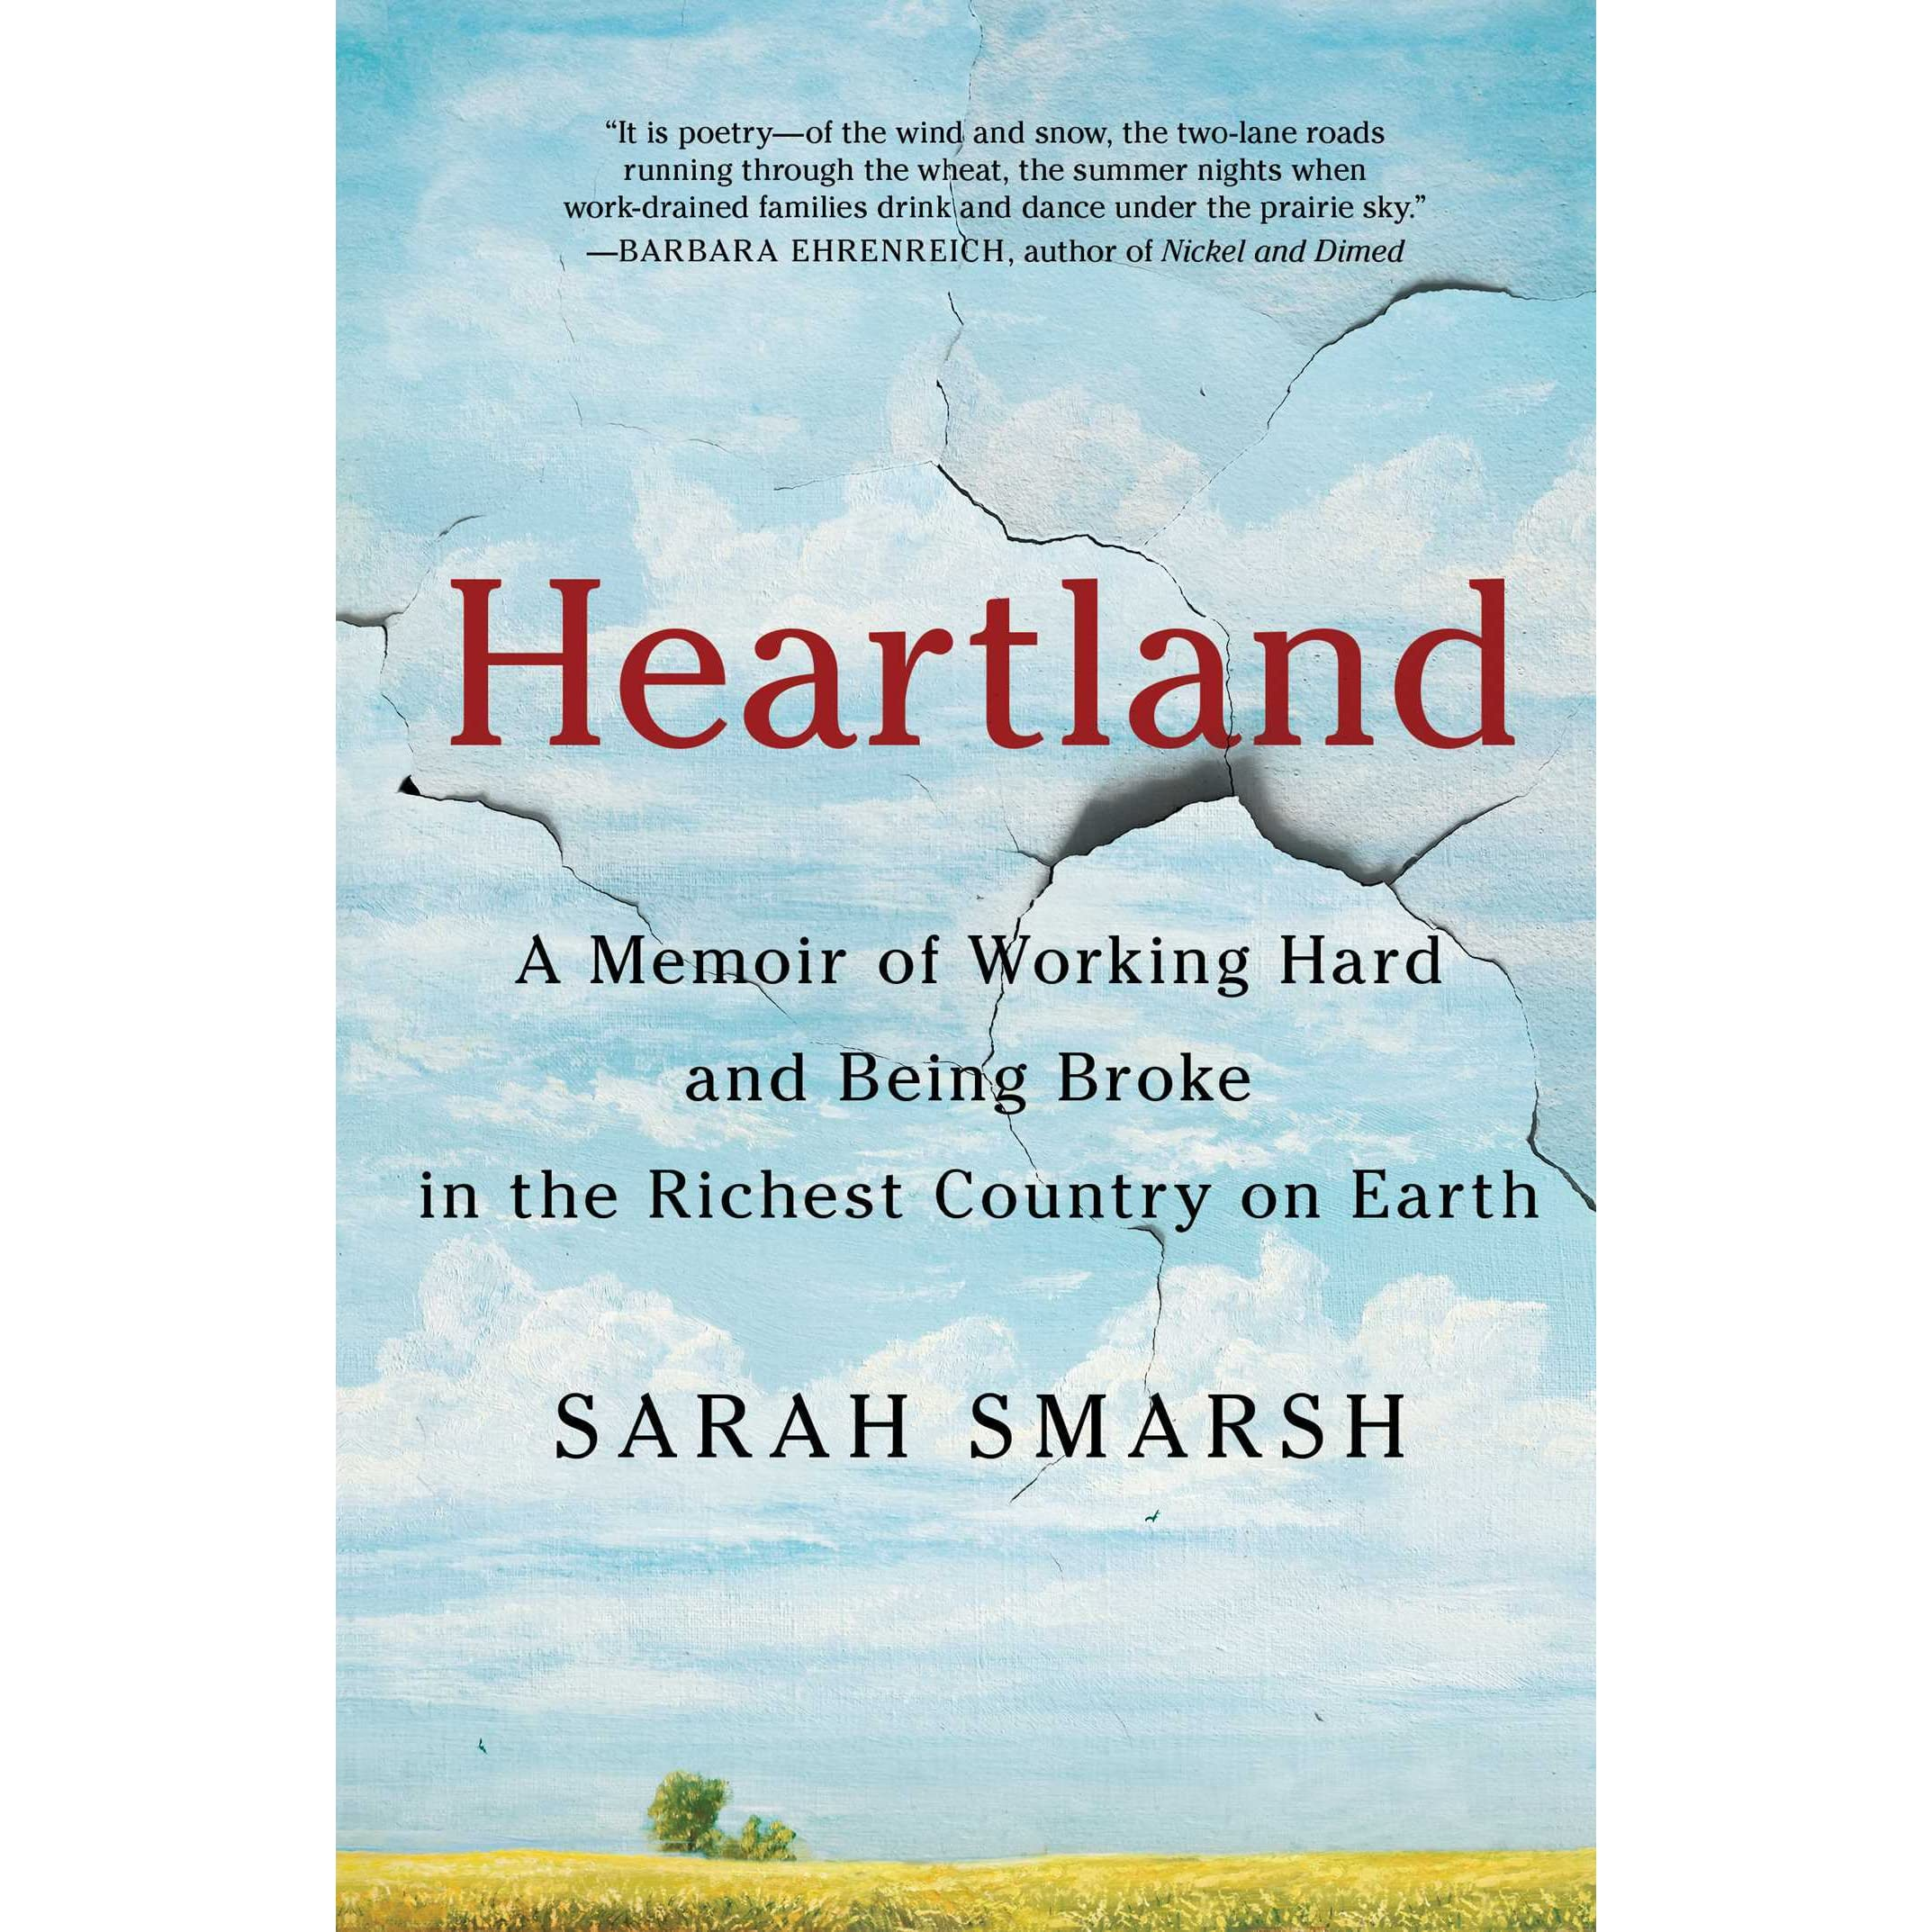 Heartland: A Memoir of Working Hard and Being Broke in the